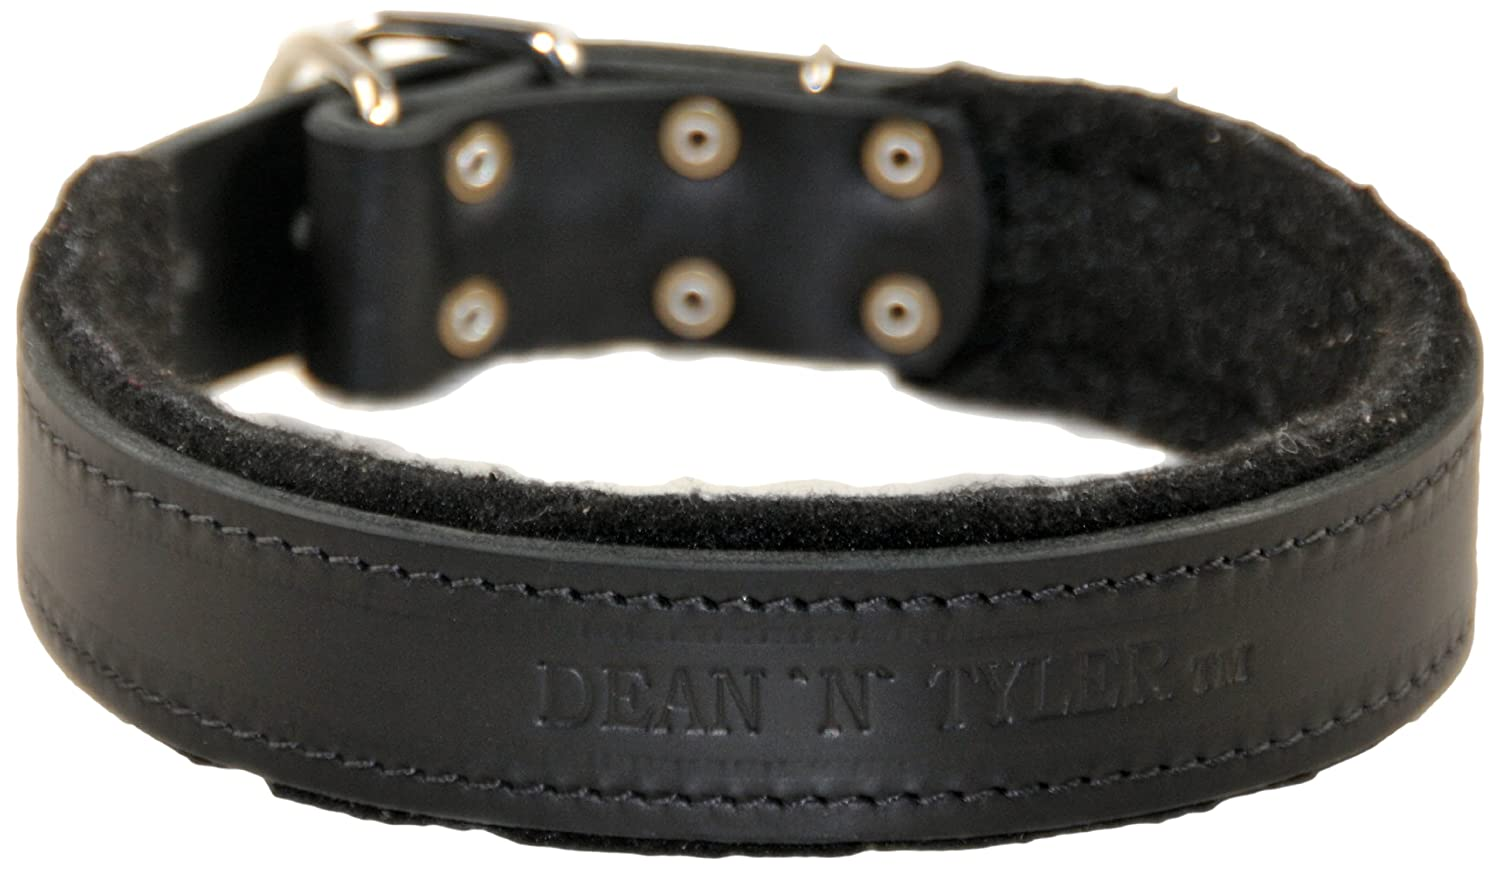 Dean and Tyler DT DELIGHT , Leather Dog Collar with Felt Padding and Strong Hardware Black Size 38-Inch by 2-Inch Fits Neck 36-Inch to 40-Inch